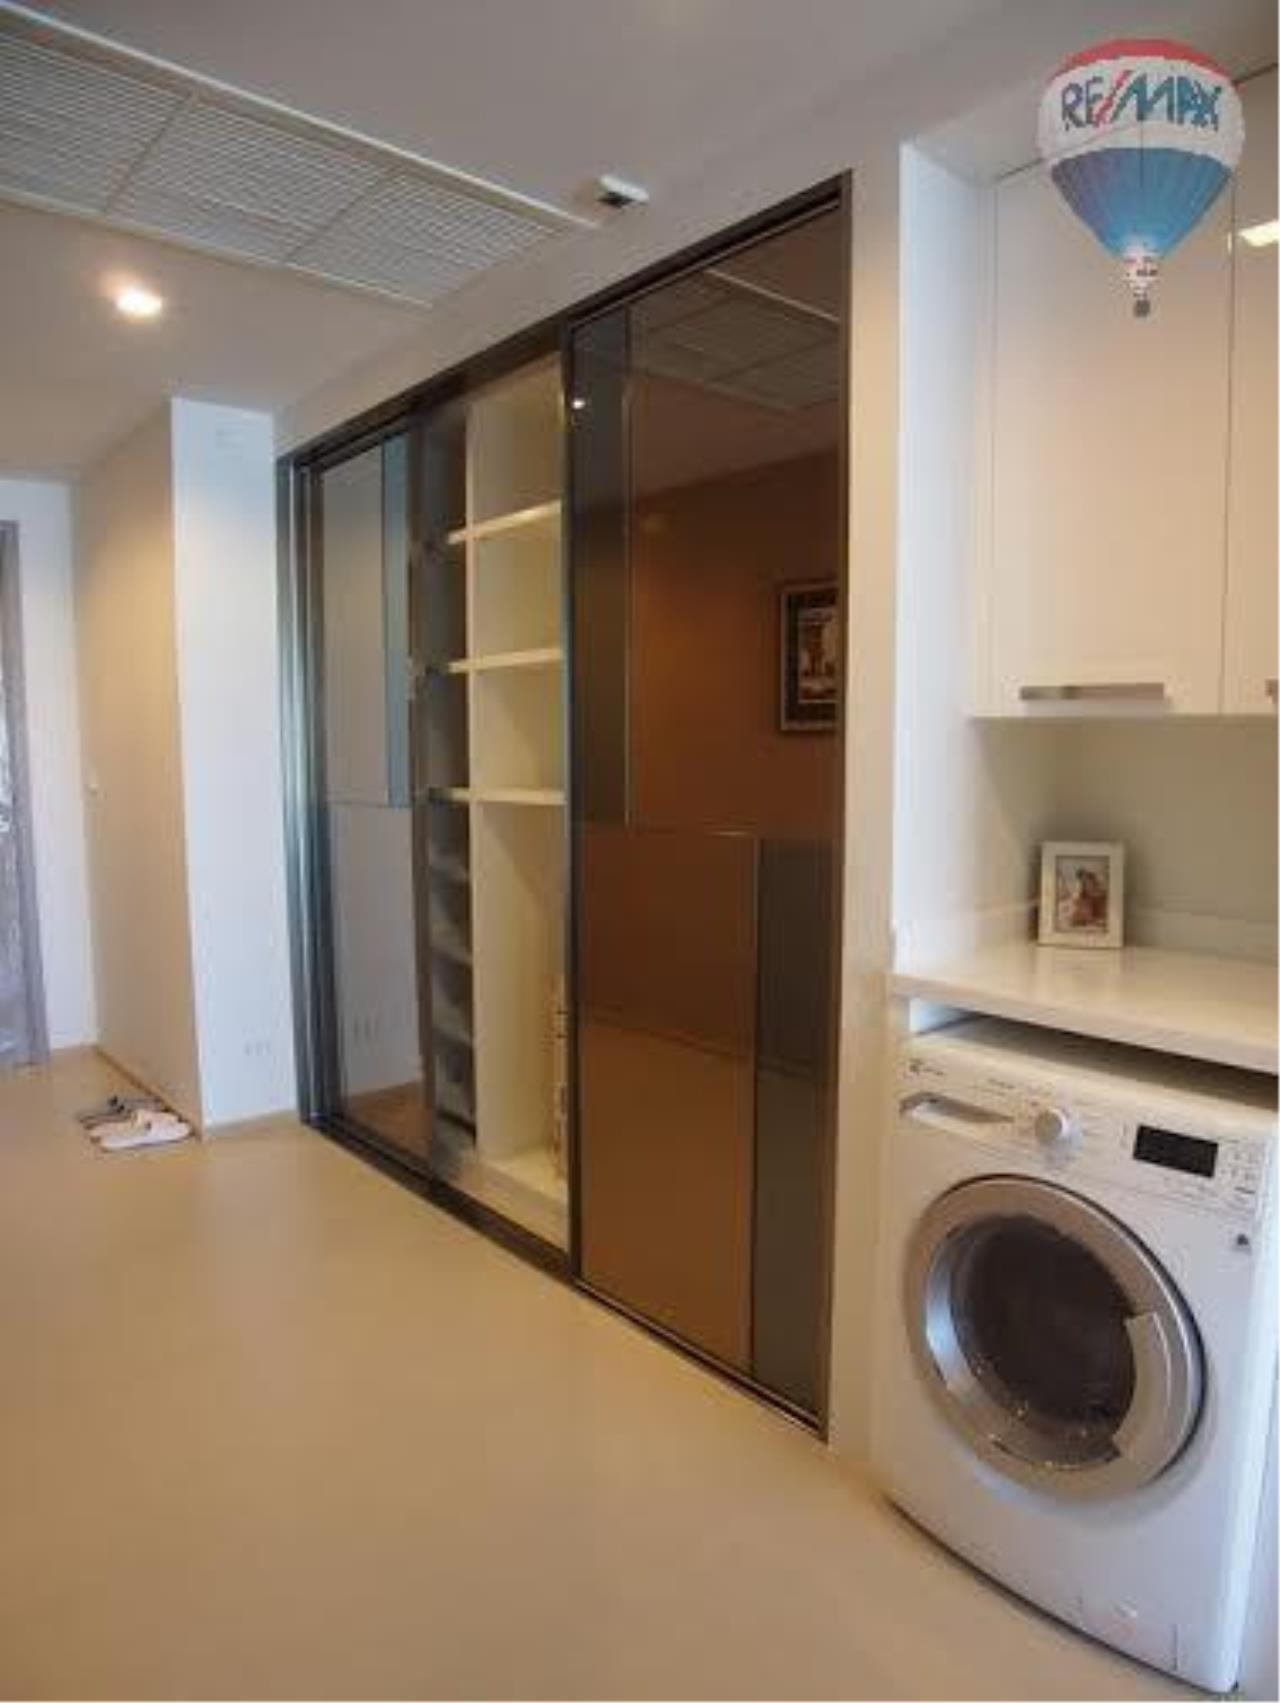 RE/MAX Properties Agency's 2 Bedrooms 100 Sq.M. in HQ by Sansiri for sale 6